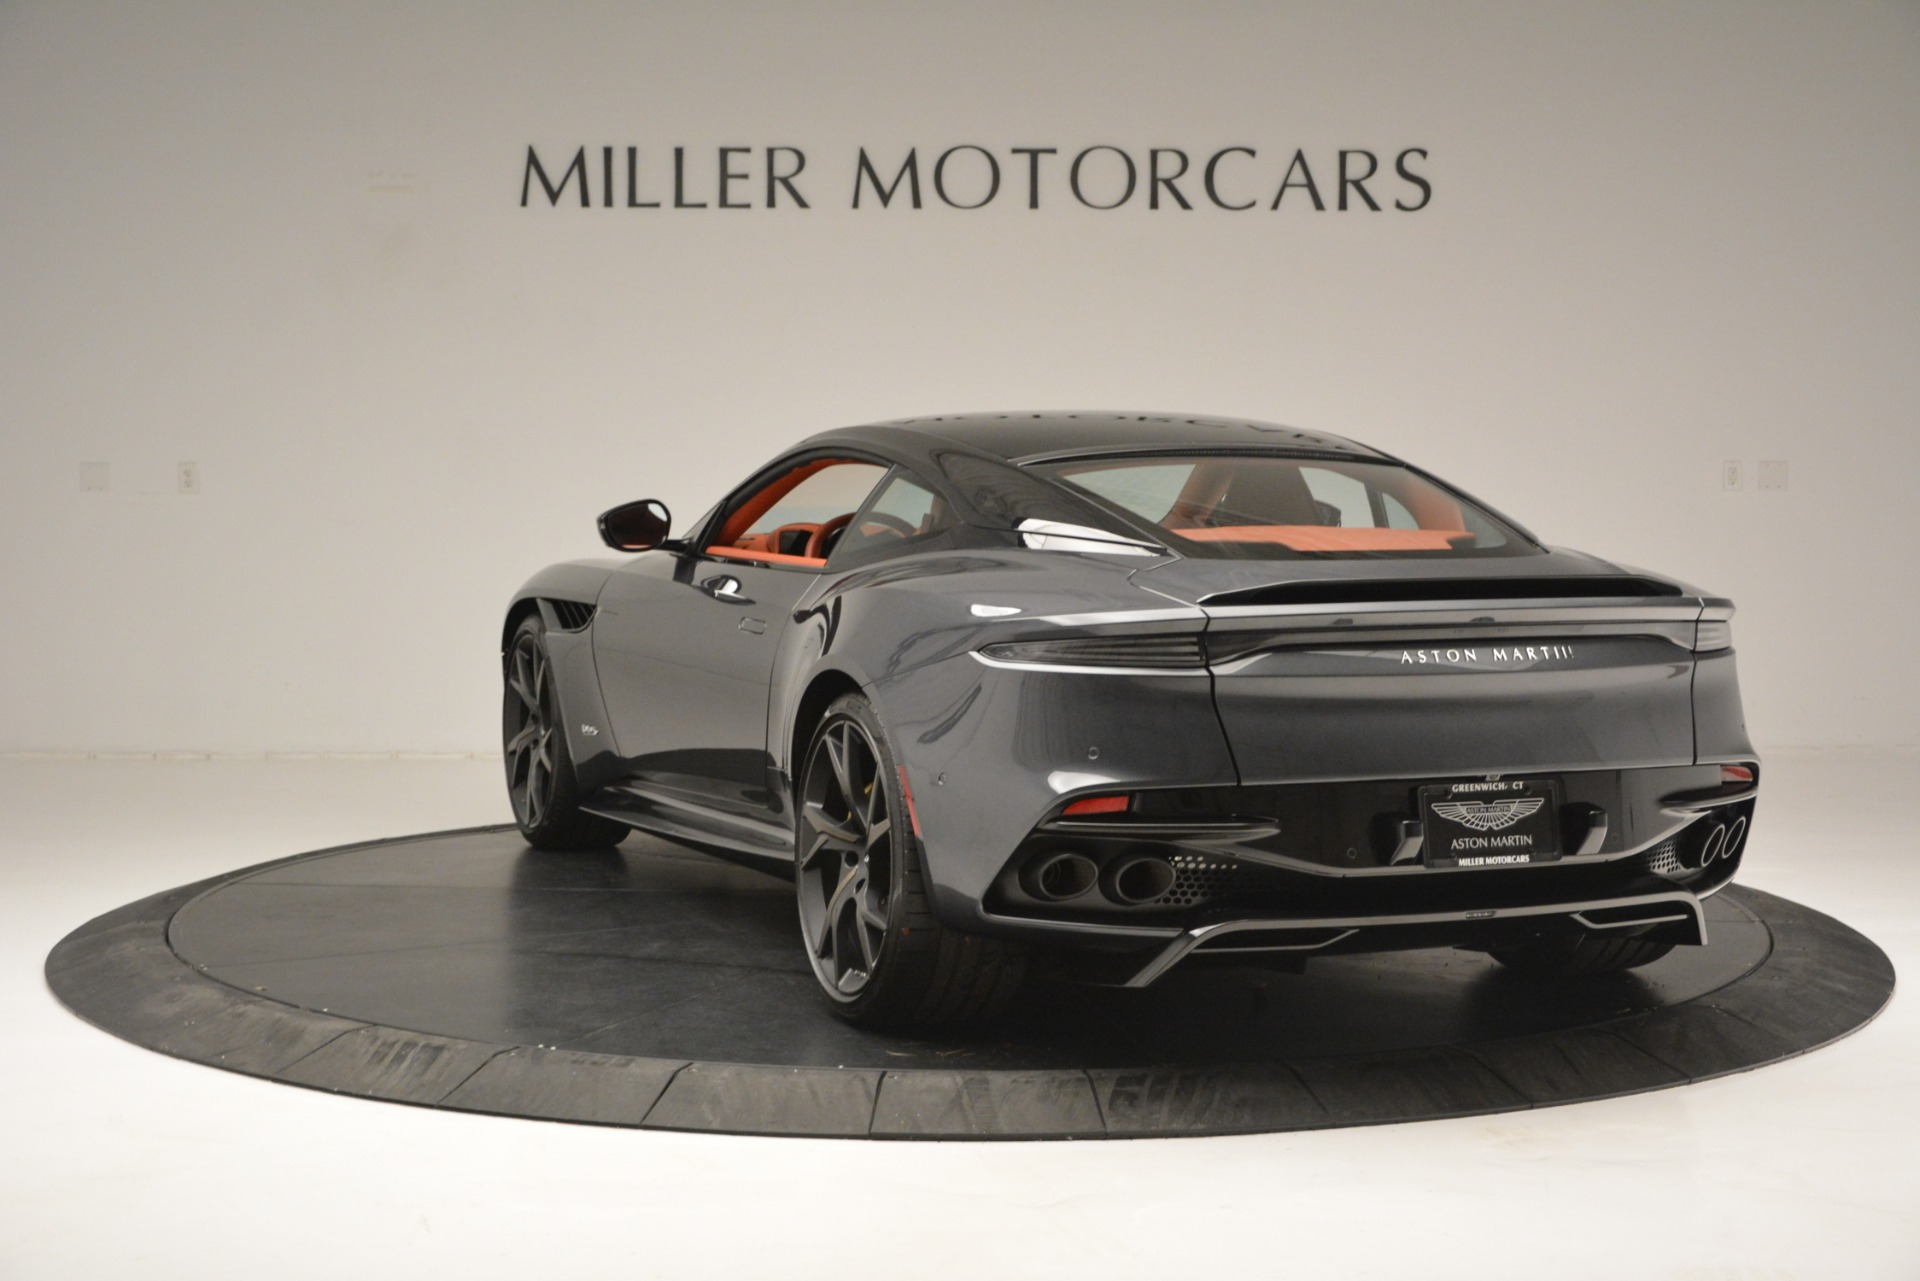 New 2019 Aston Martin DBS Superleggera For Sale In Westport, CT 2827_p5